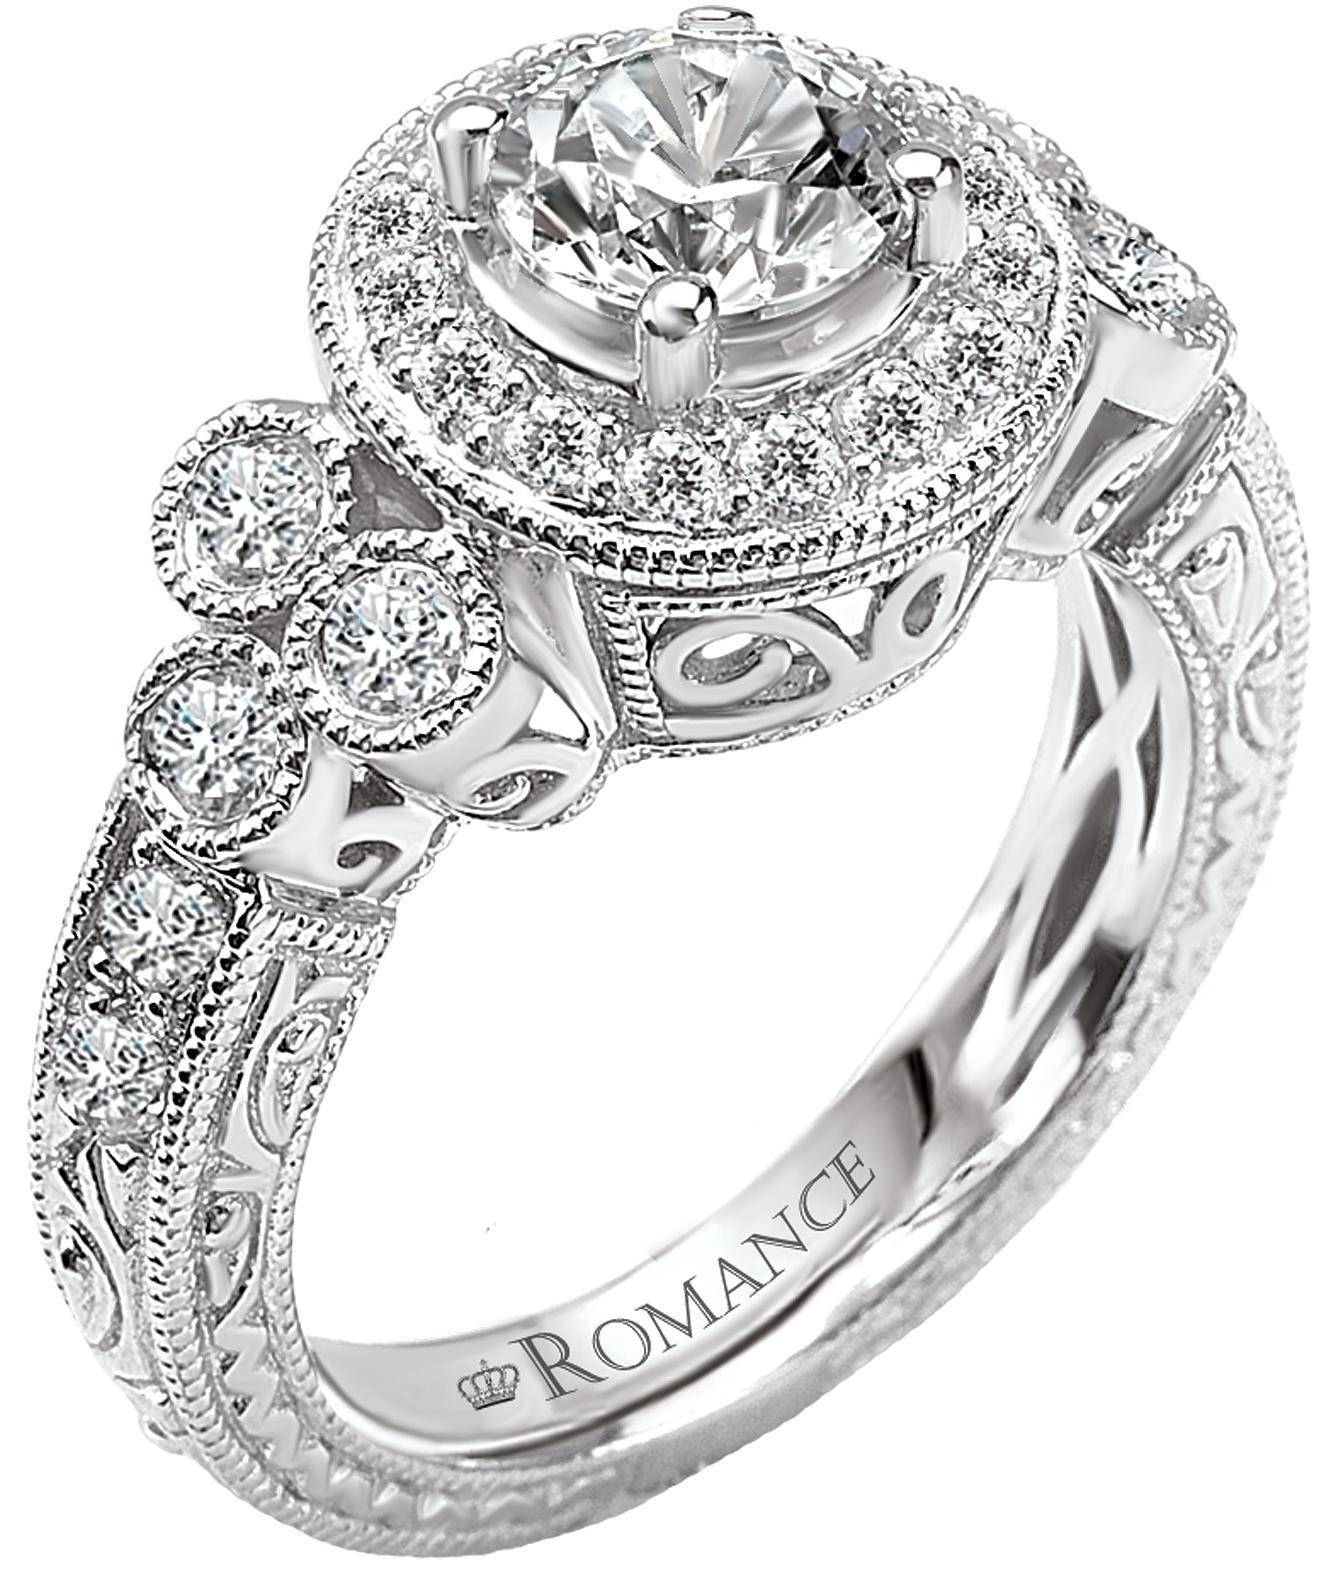 Modern Vintage Engagement Rings | Wedding, Promise, Diamond For Pompeii Engagement Rings (View 2 of 15)